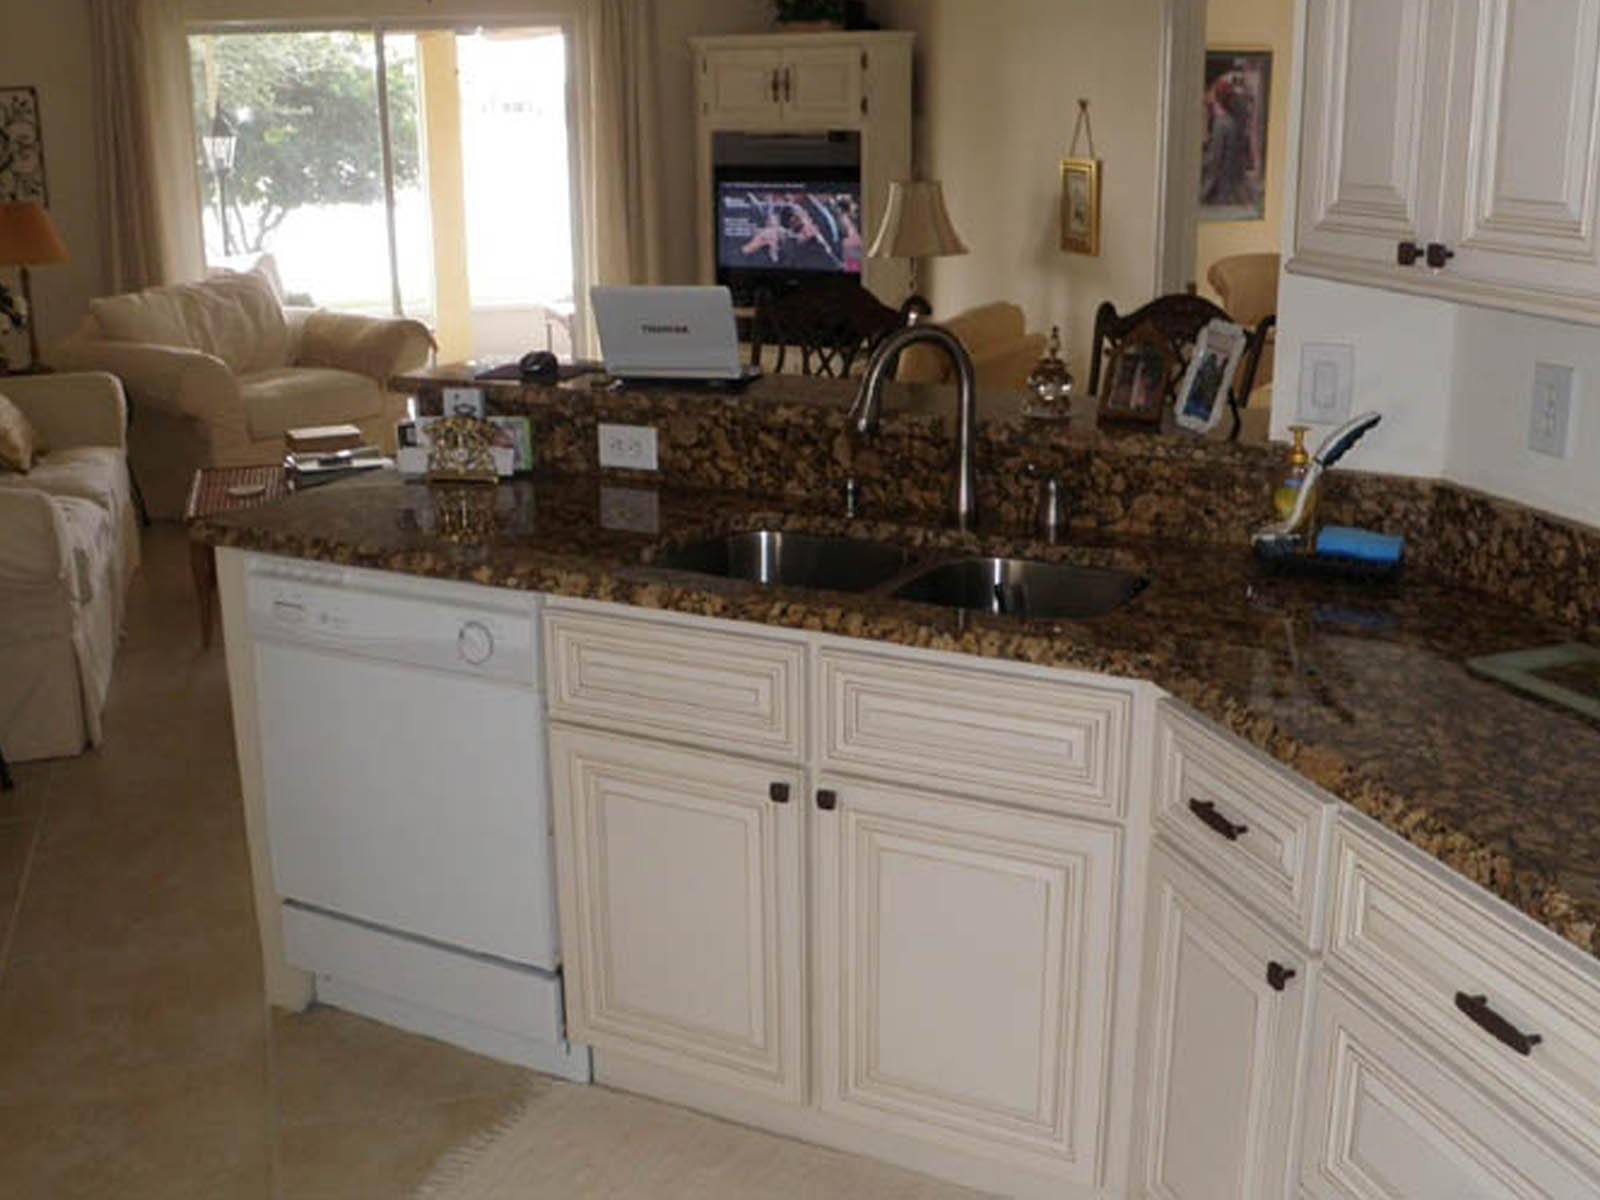 Bathroom Remodeling Melbourne Fl kitchen, countertops, cabinets and baths sales and installation in